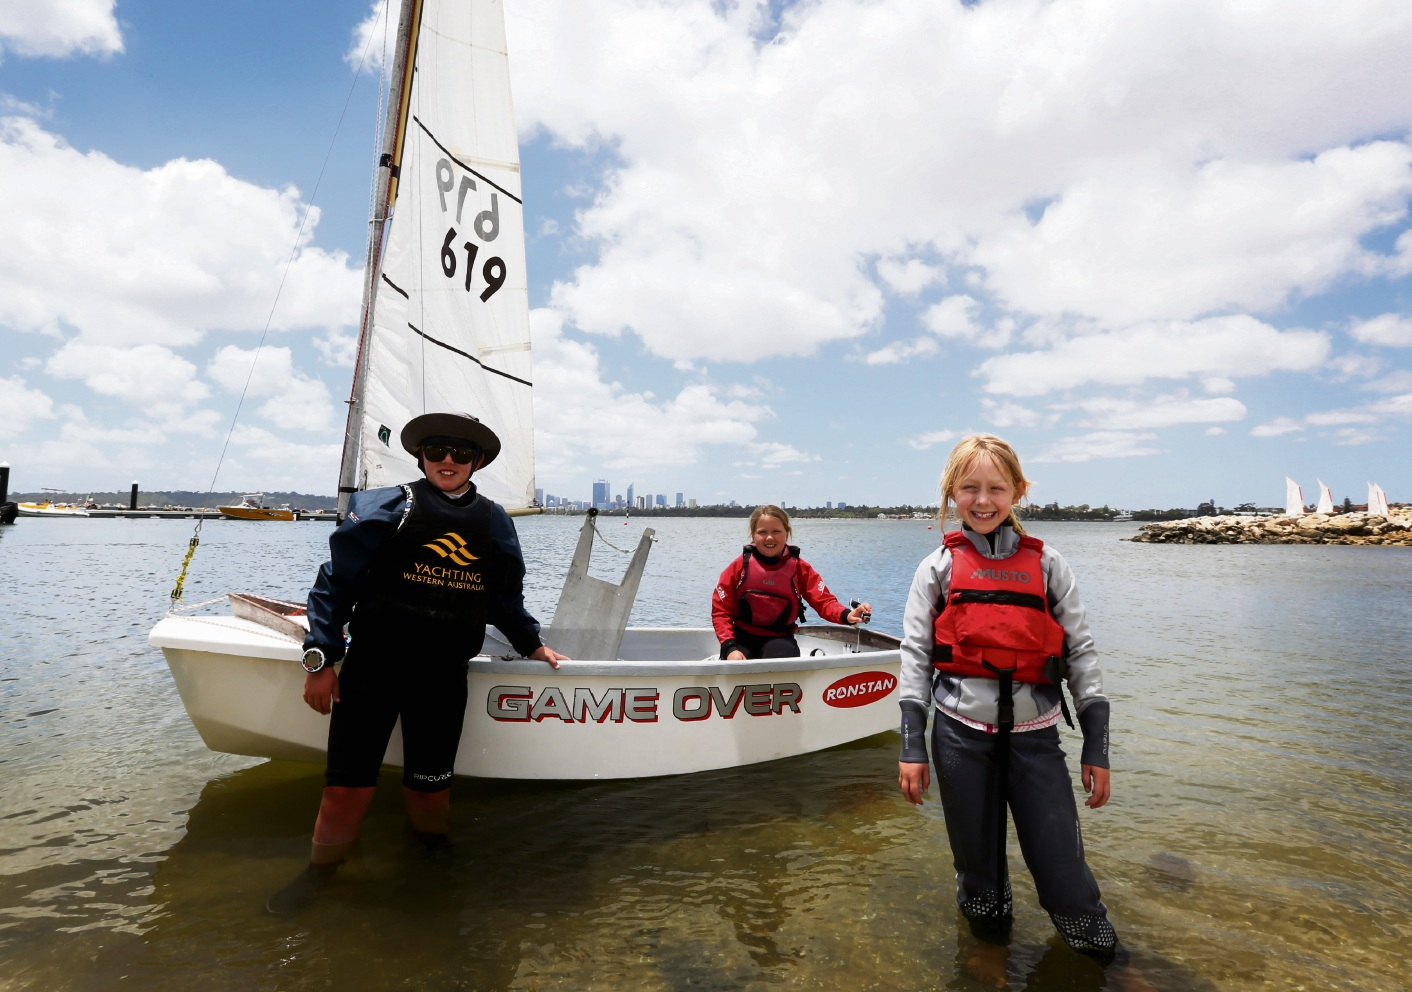 Finn Manning, Paige Durell and Ela Roodhouse from Geographe Bay Yacht Club.